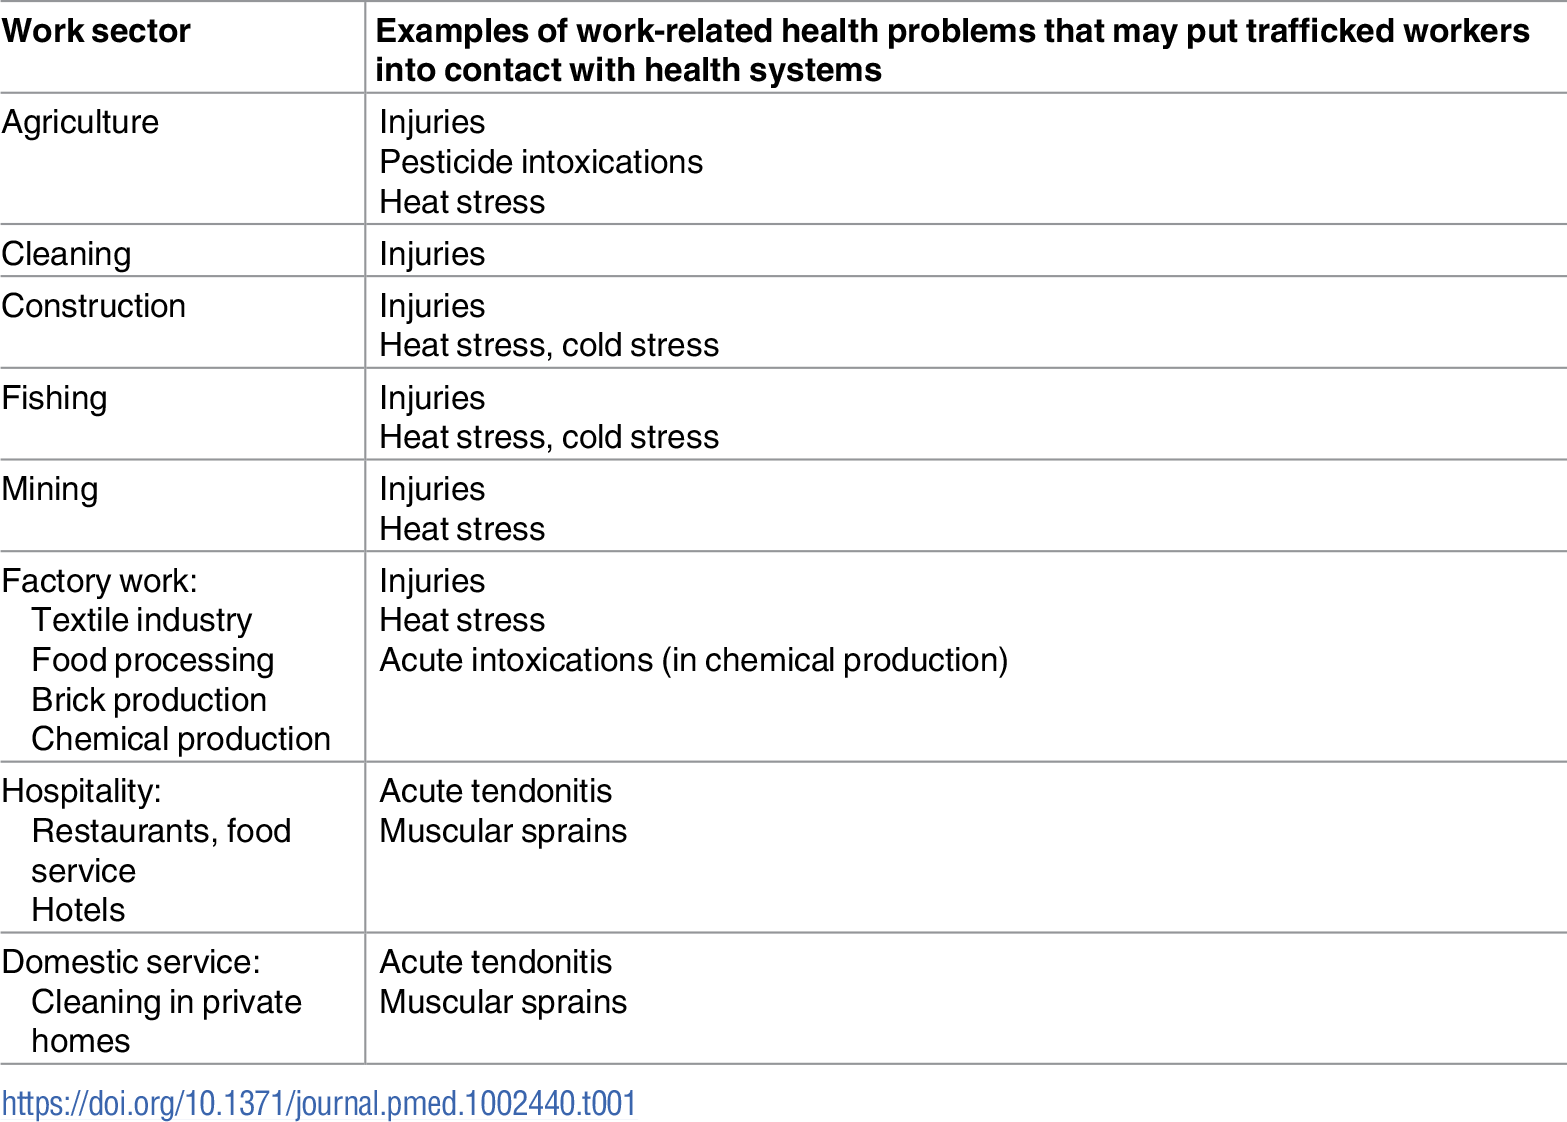 """Main sectors of work known to be related to labour trafficking and their possible health problems [<em class=""""ref"""">2</em>,<em class=""""ref"""">4</em>]."""